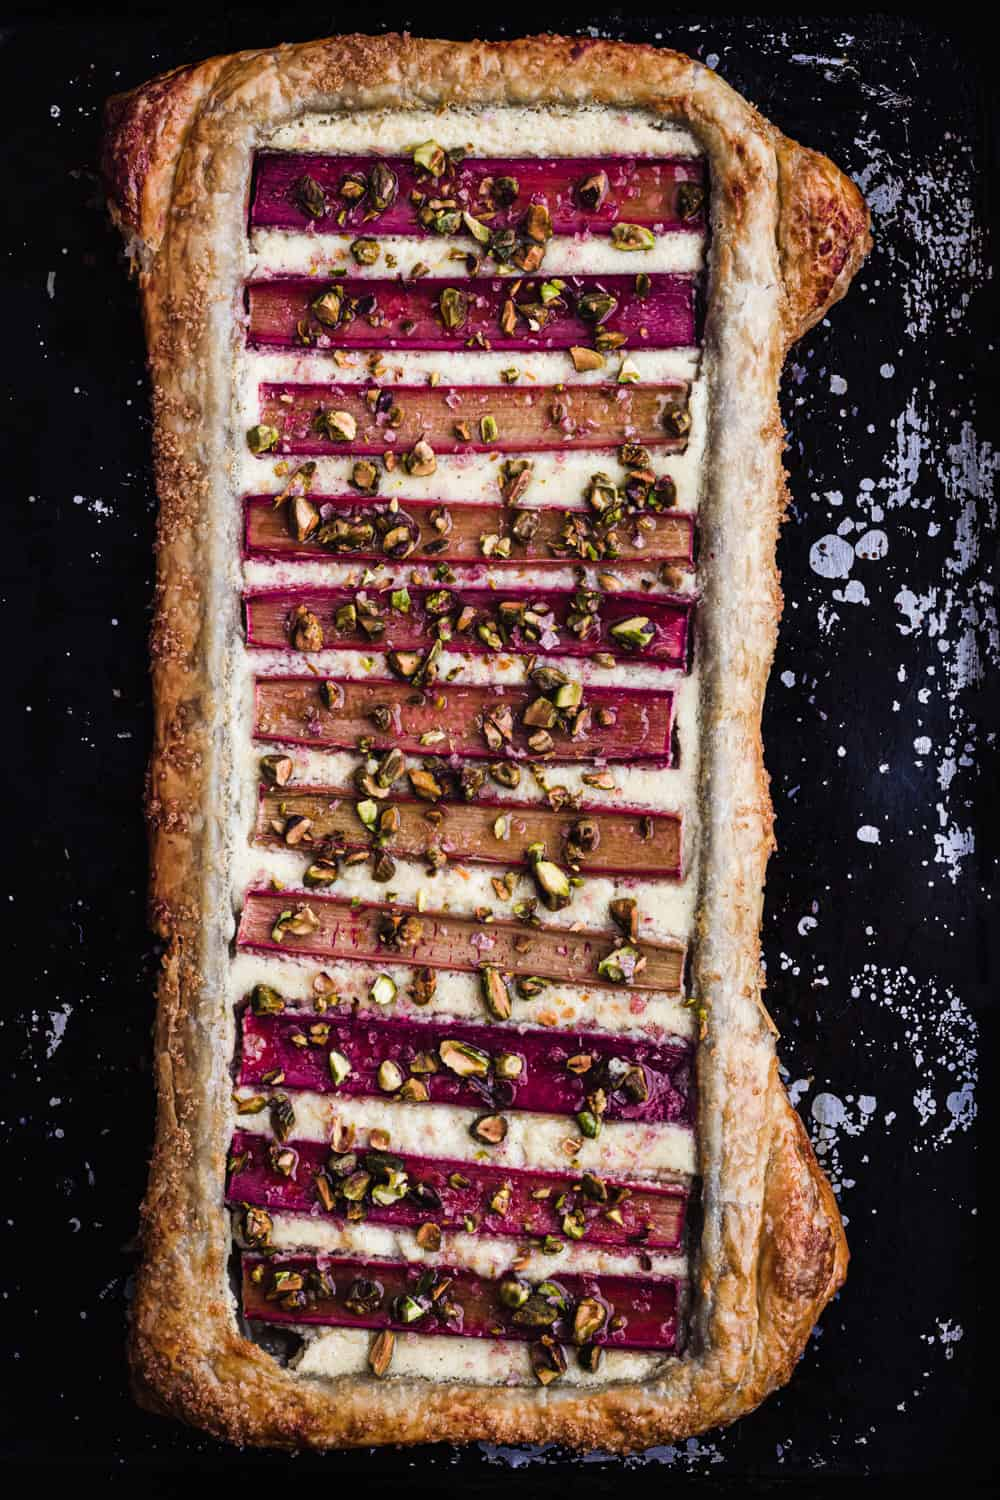 Overhead shot of the finished rhubarb tart drizzled with honey and crunchy pistachios, overhead shot.